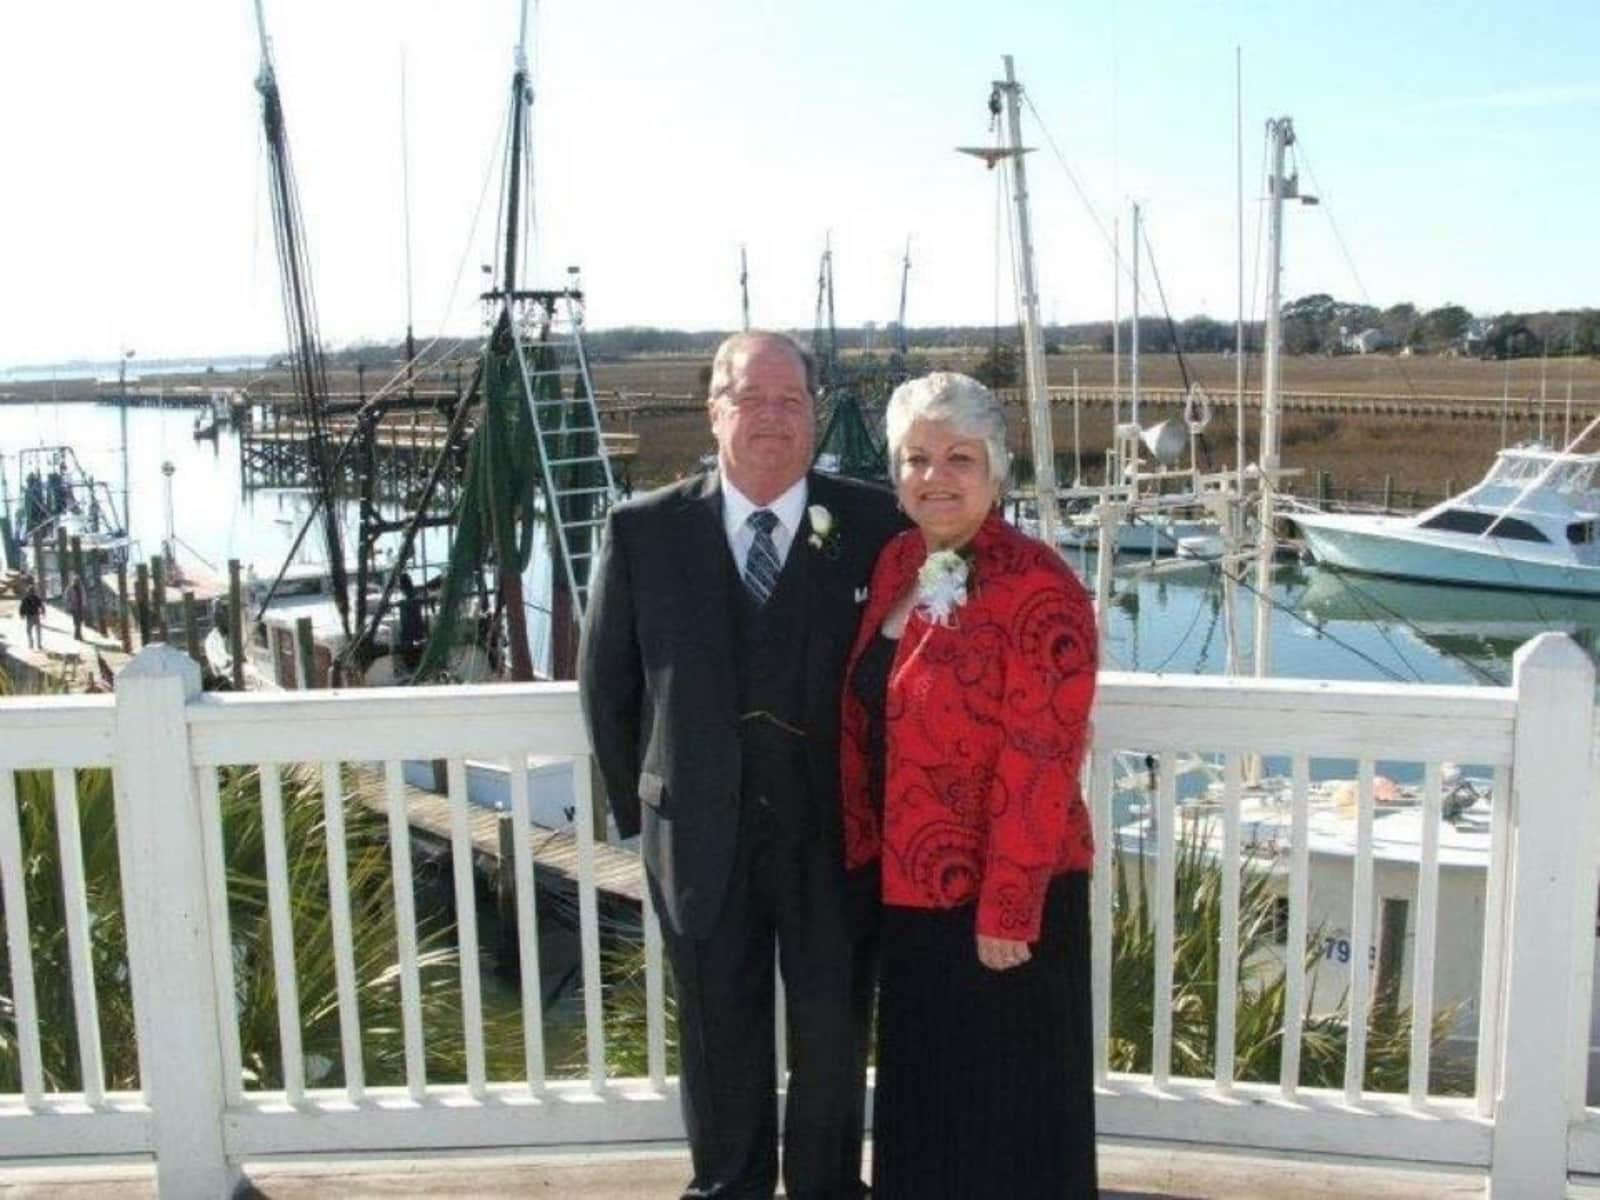 David & Laurie from Saratoga, California, United States